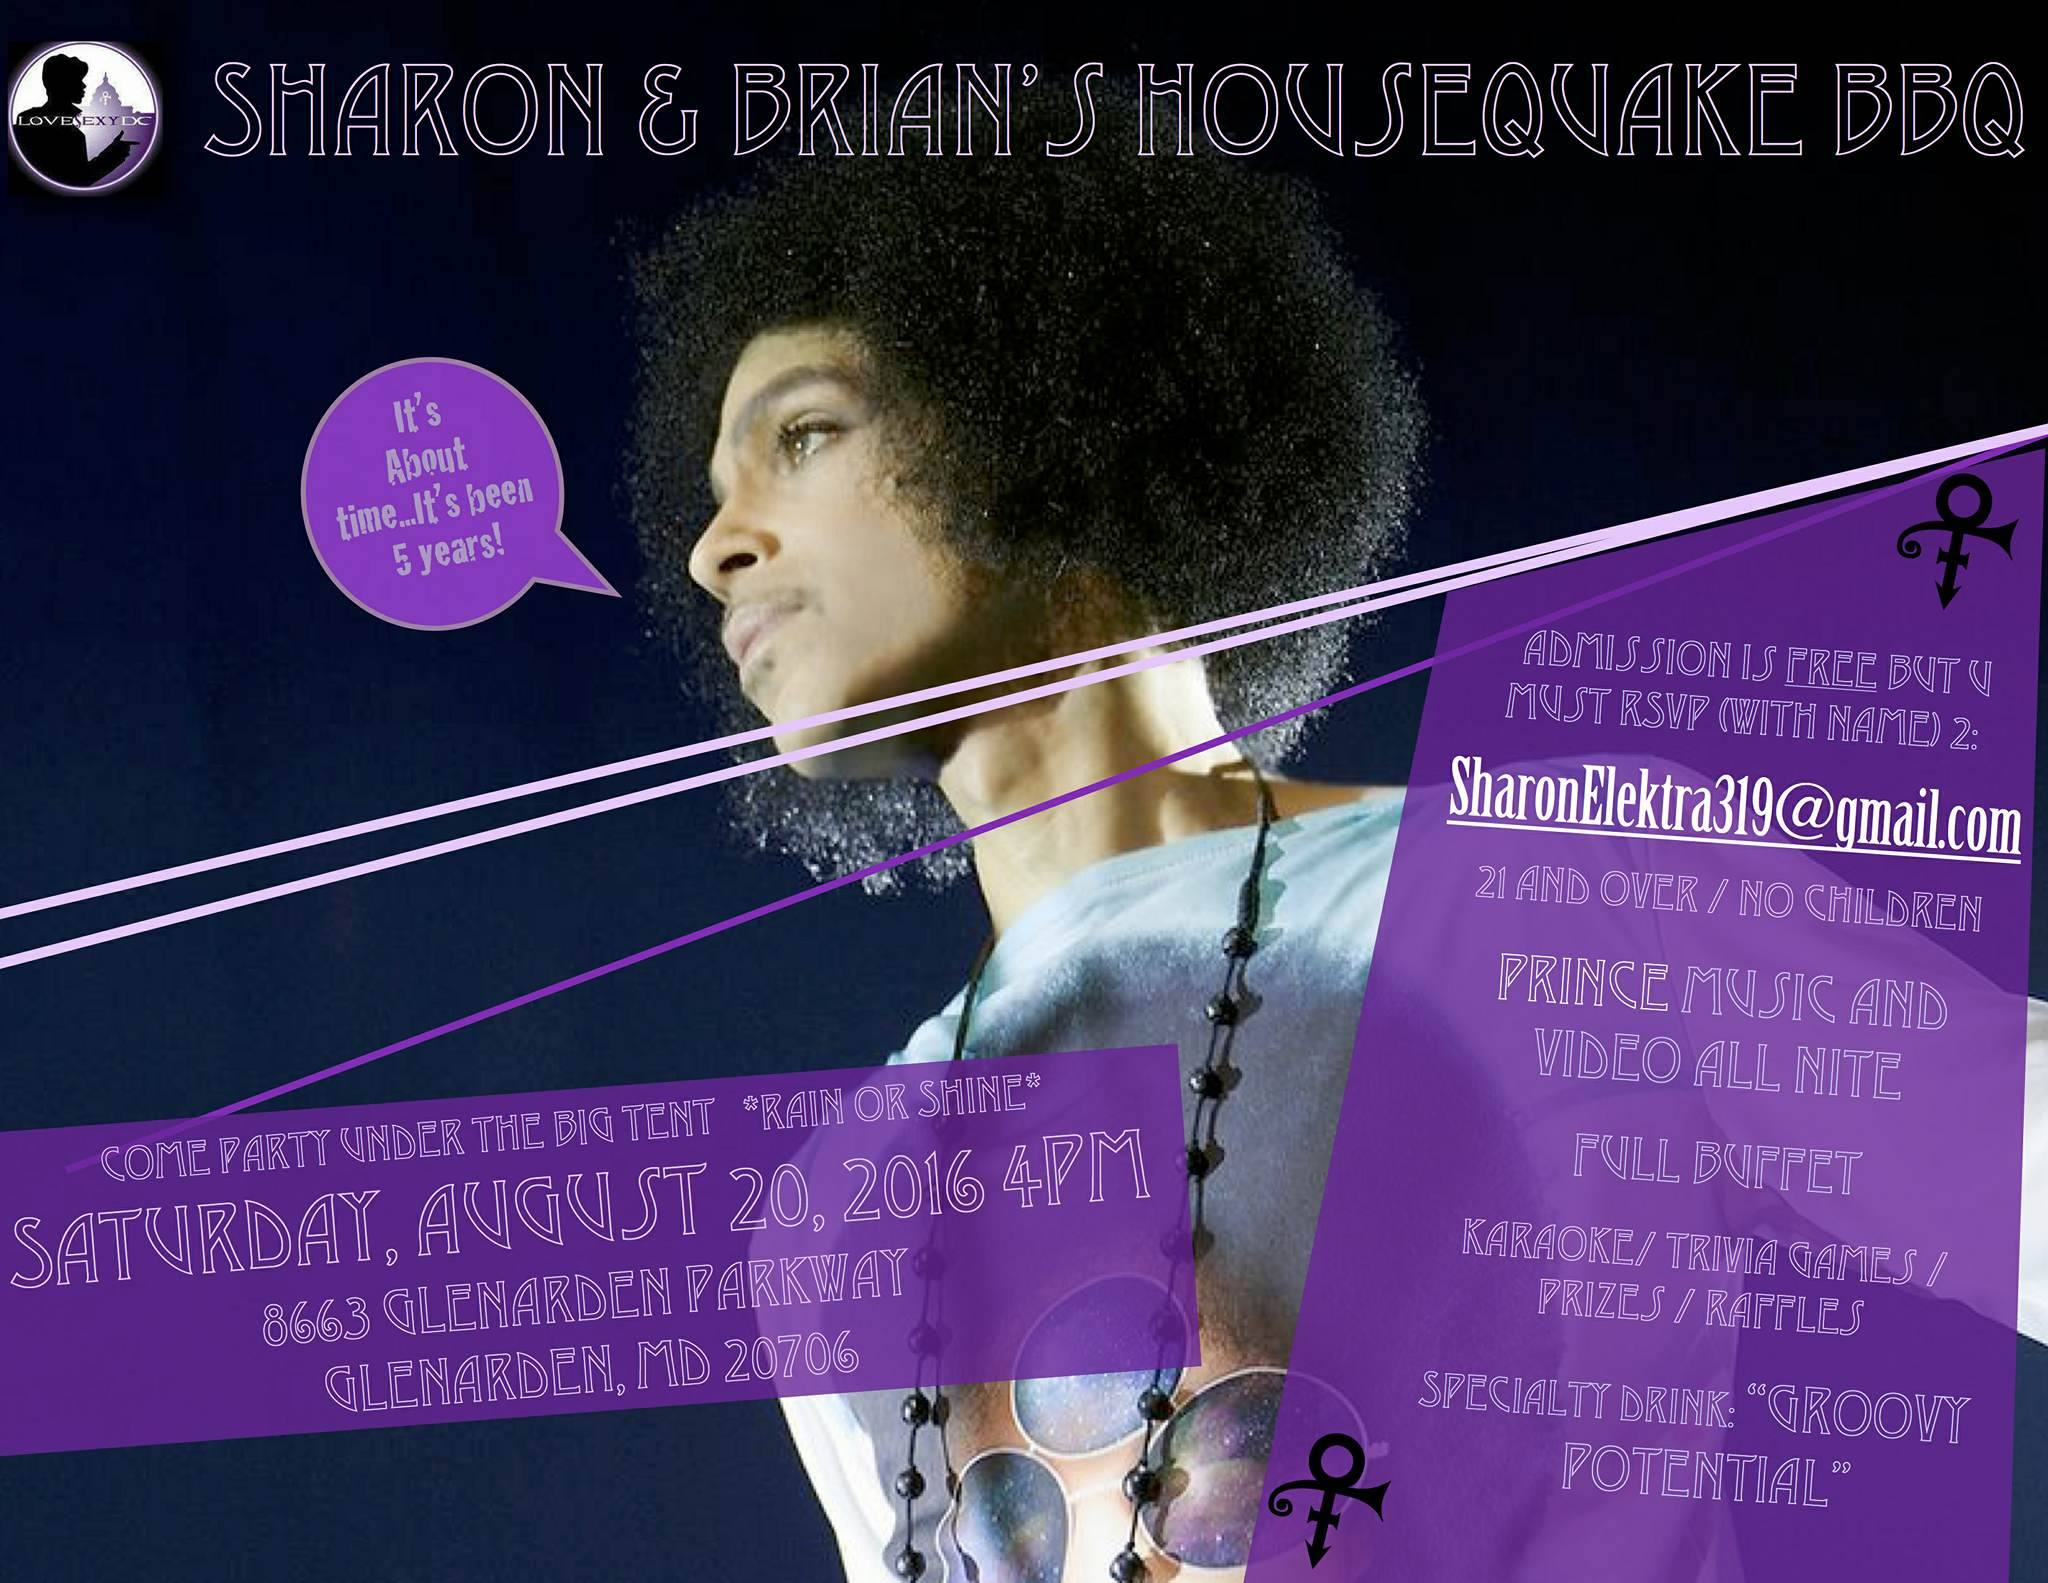 August 20 2016 Prince Party